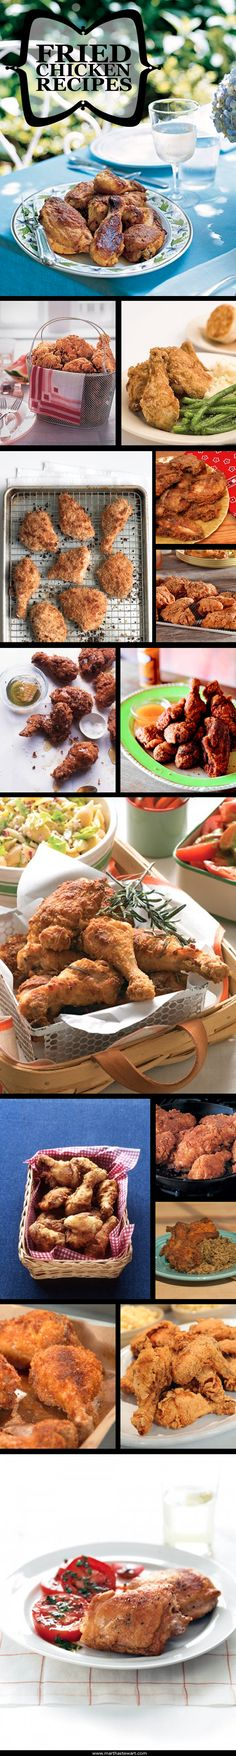 Fried Chicken Recipes | Martha Stewart Living